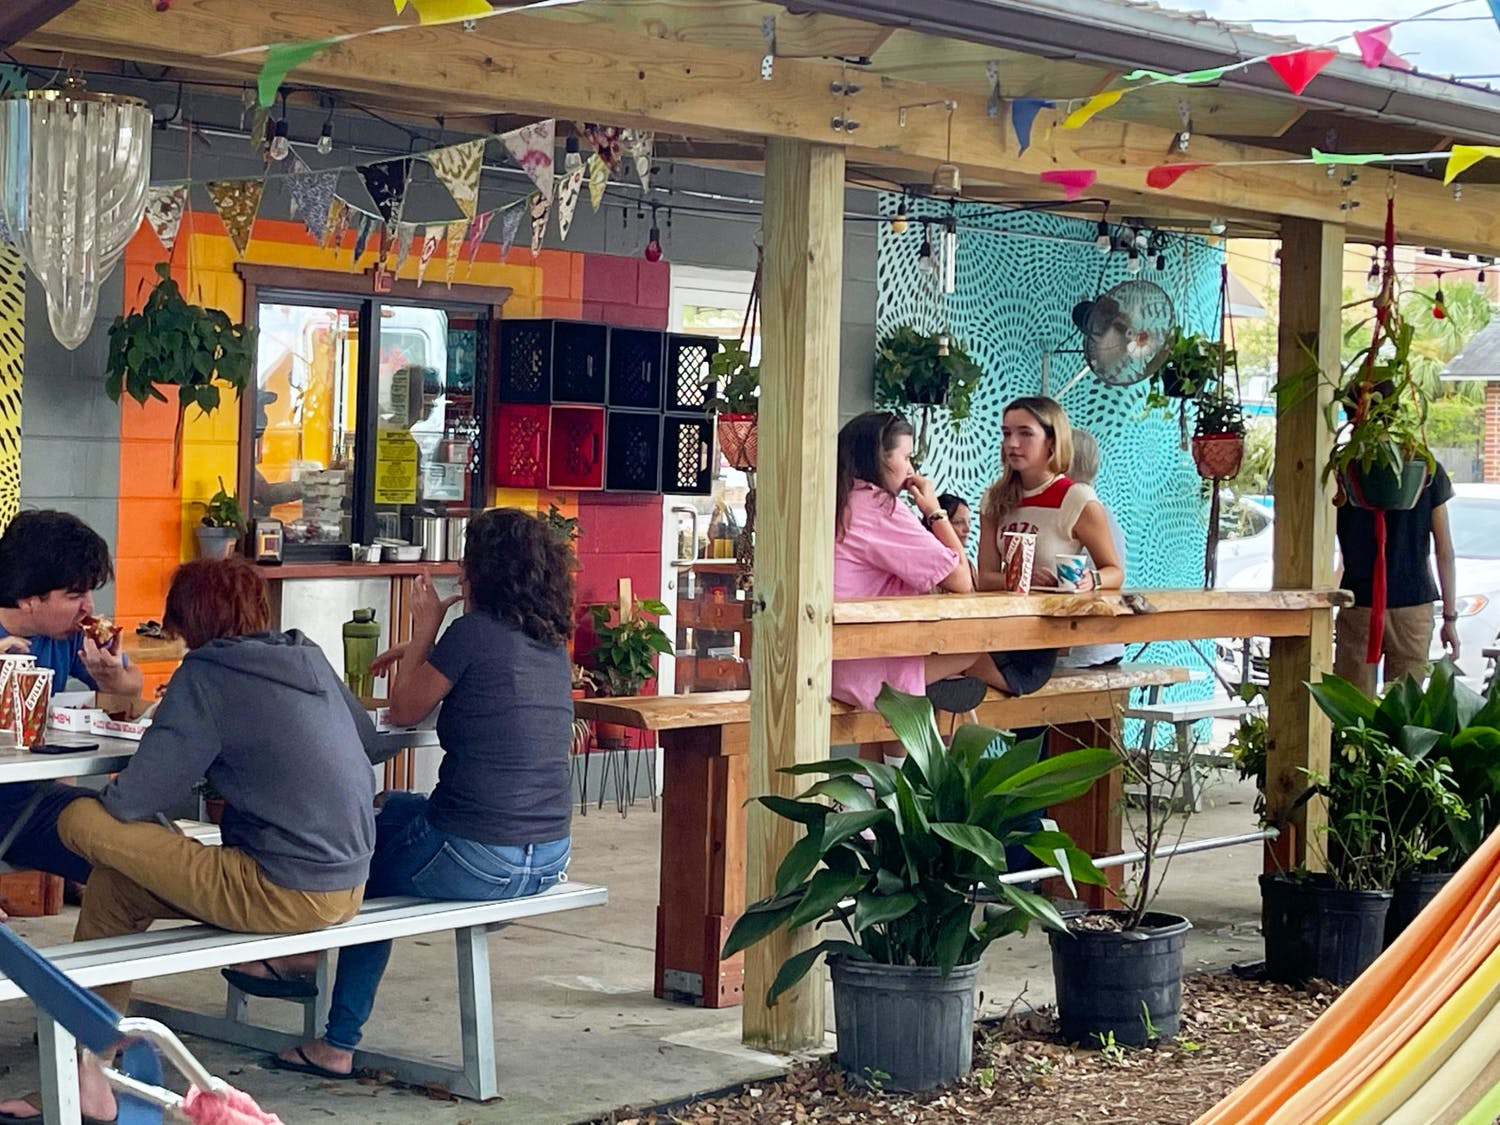 Customers sit outside of Satch² off of 4th Avenue while they eat pizza and waffles on Sunday, July 18, 2021.